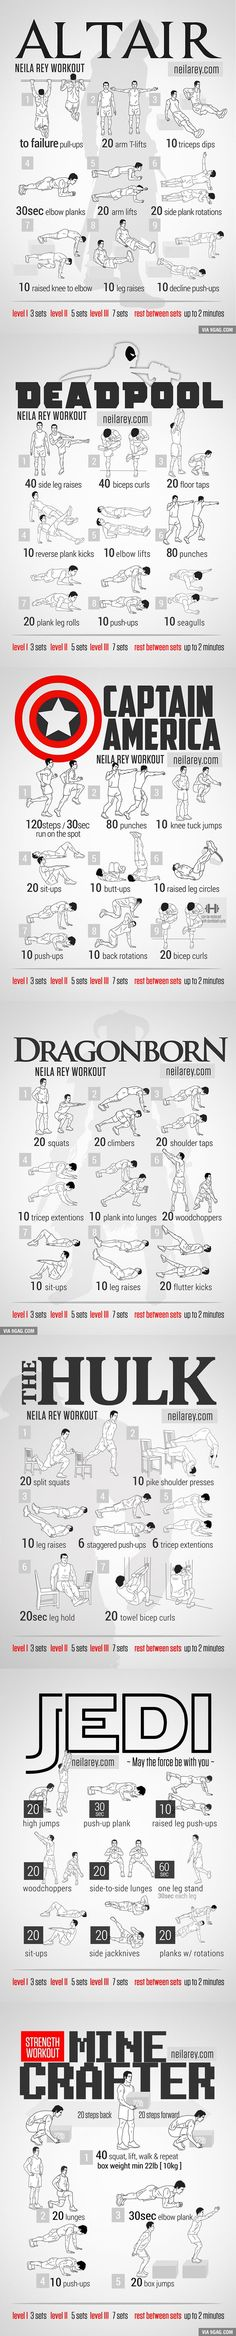 New Hardcore Workout! YOU WELCOME :) Al Tair, Deadpool, Campain America, Dragonborn, The Hulk, Jedi and the Minecrafter workouts